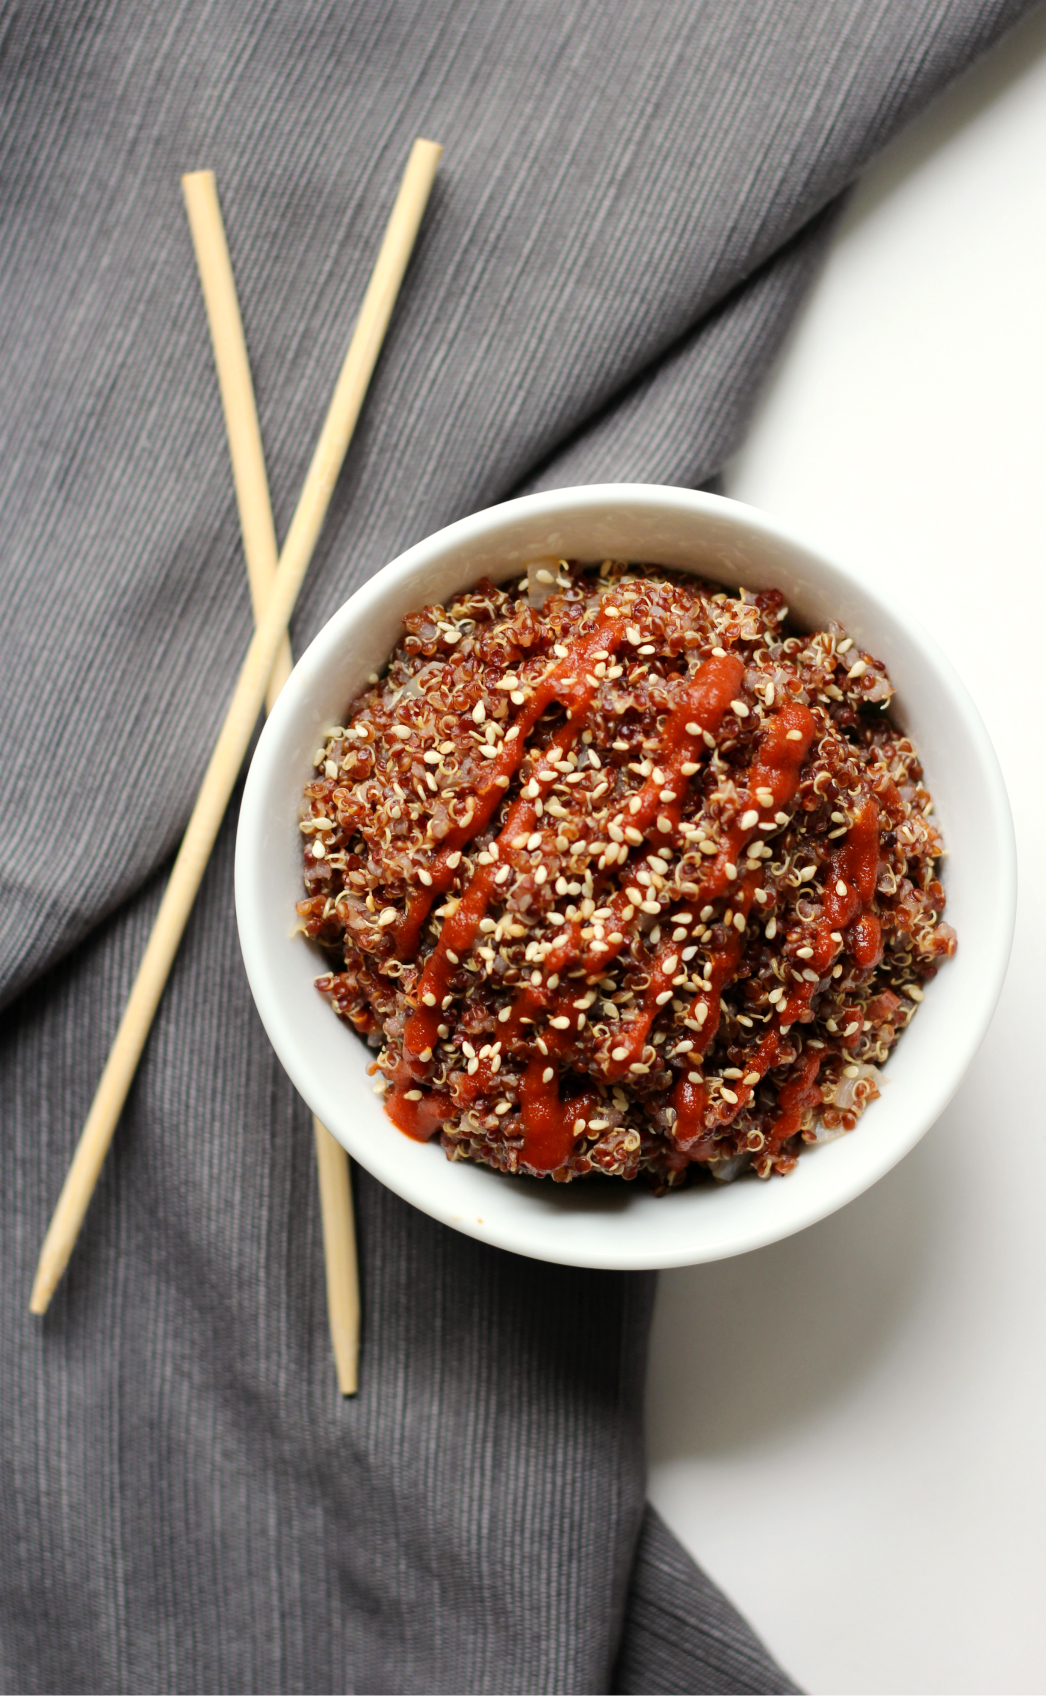 Spicy Red Sriracha Quinoa | Strength and Sunshine @RebeccaGF666 It's gettin' hot in here! Fiery and hot, spicy red sriracha quinoa is not for the faint of heart! The perfect taste bud poppin' Asian side dish recipe to please all of your spicy loving gluten-free and vegan friends!